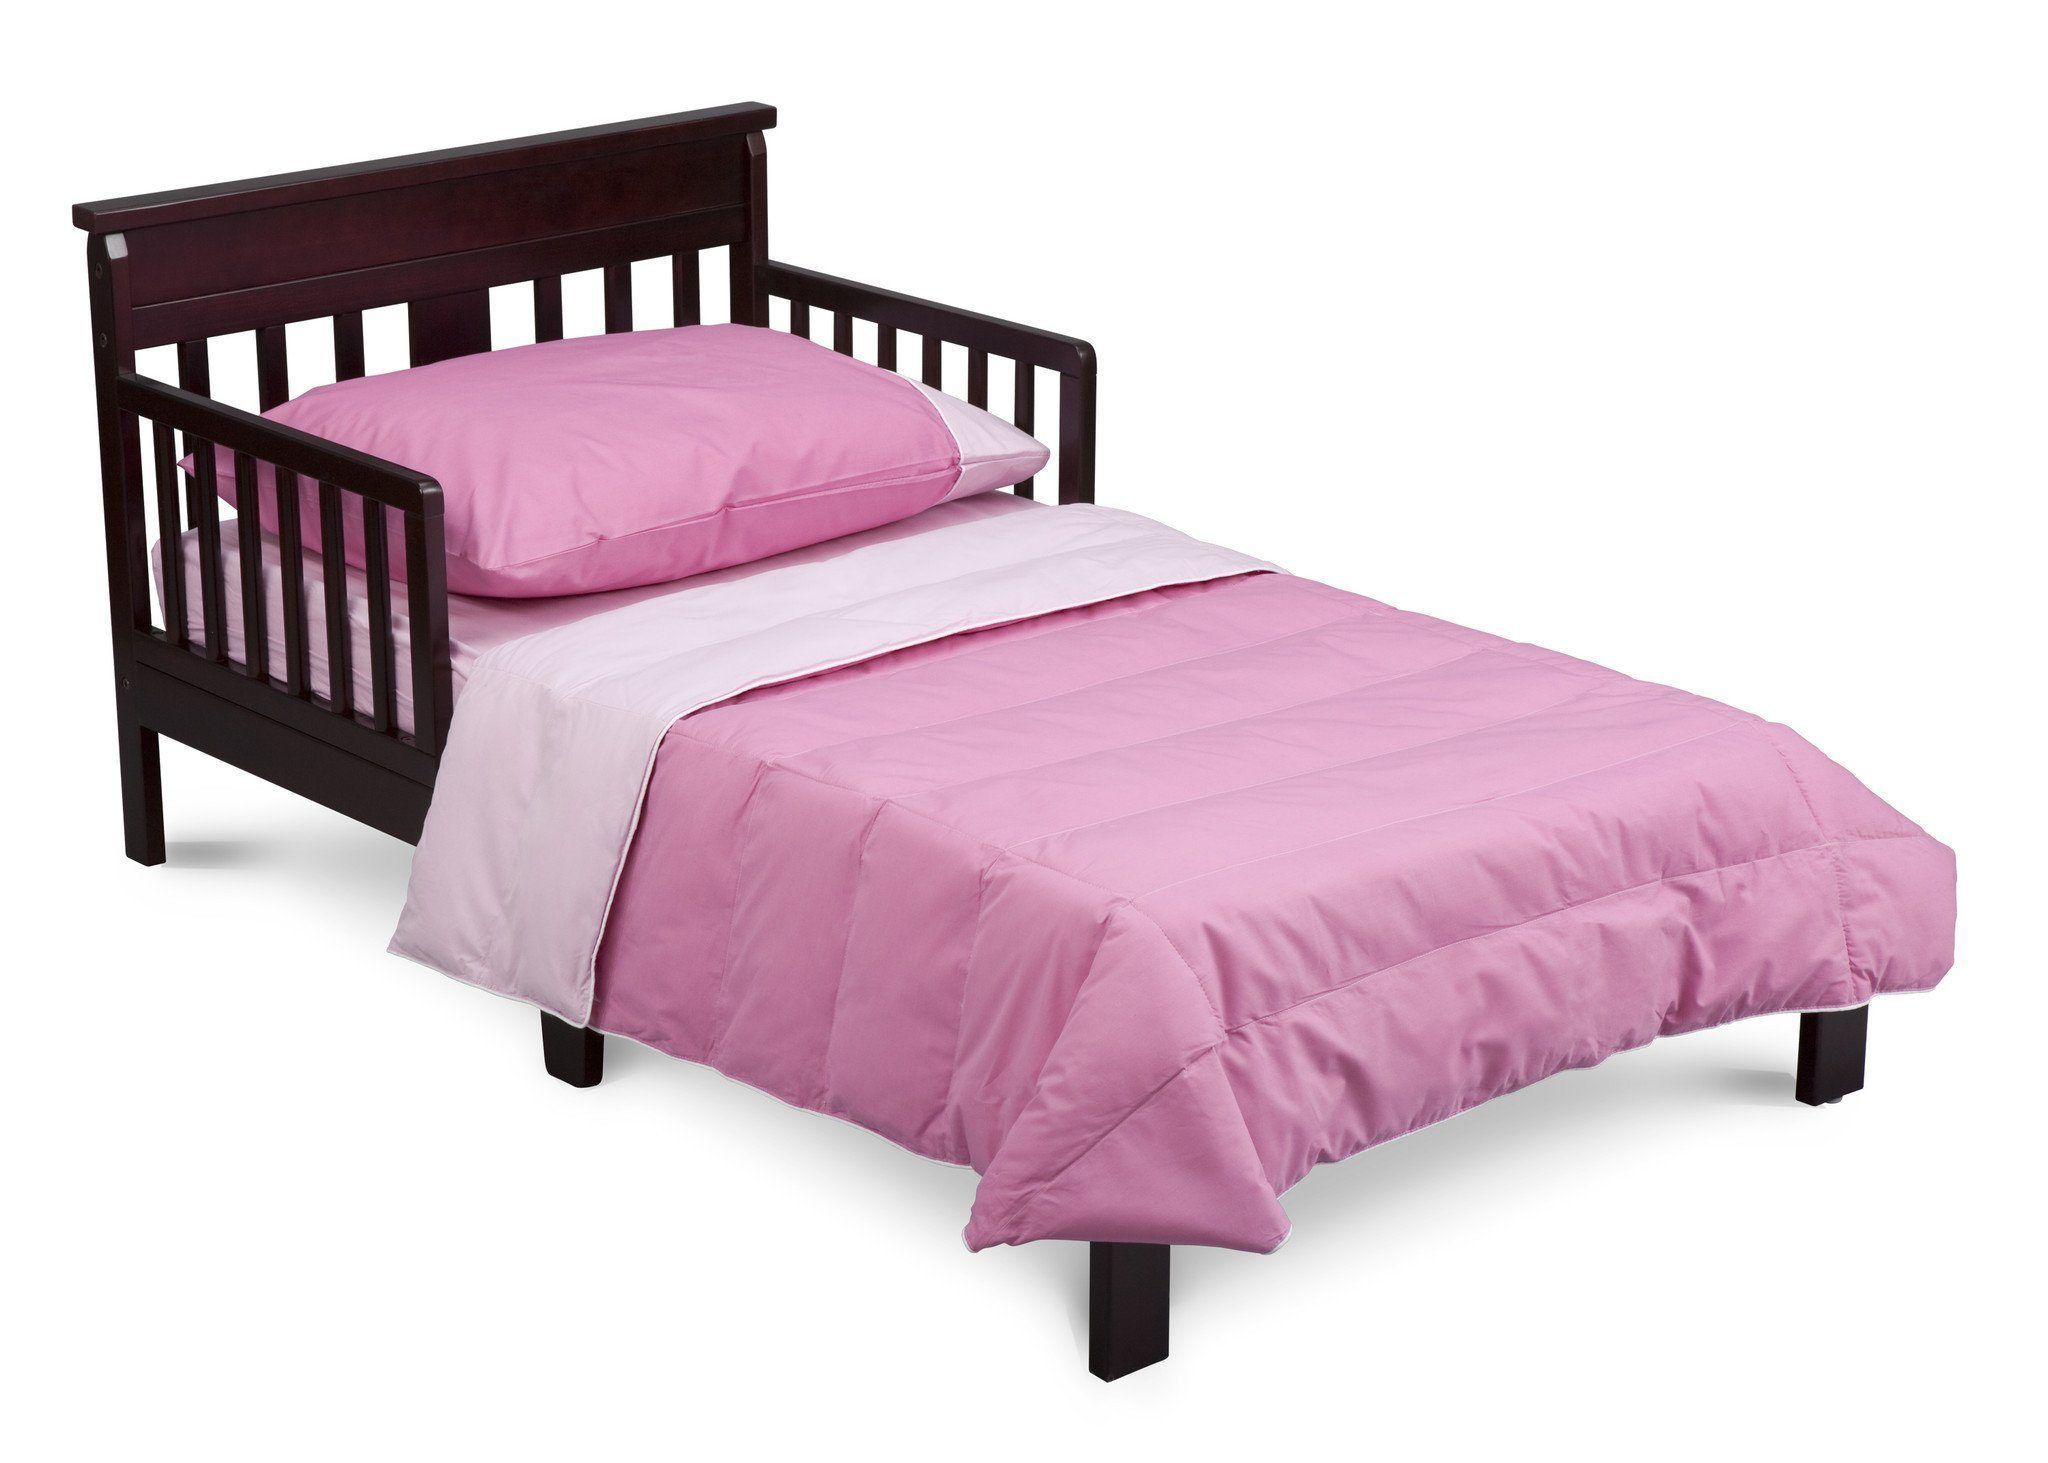 Toddler Bed Bedding Bettdecke Bettbezug